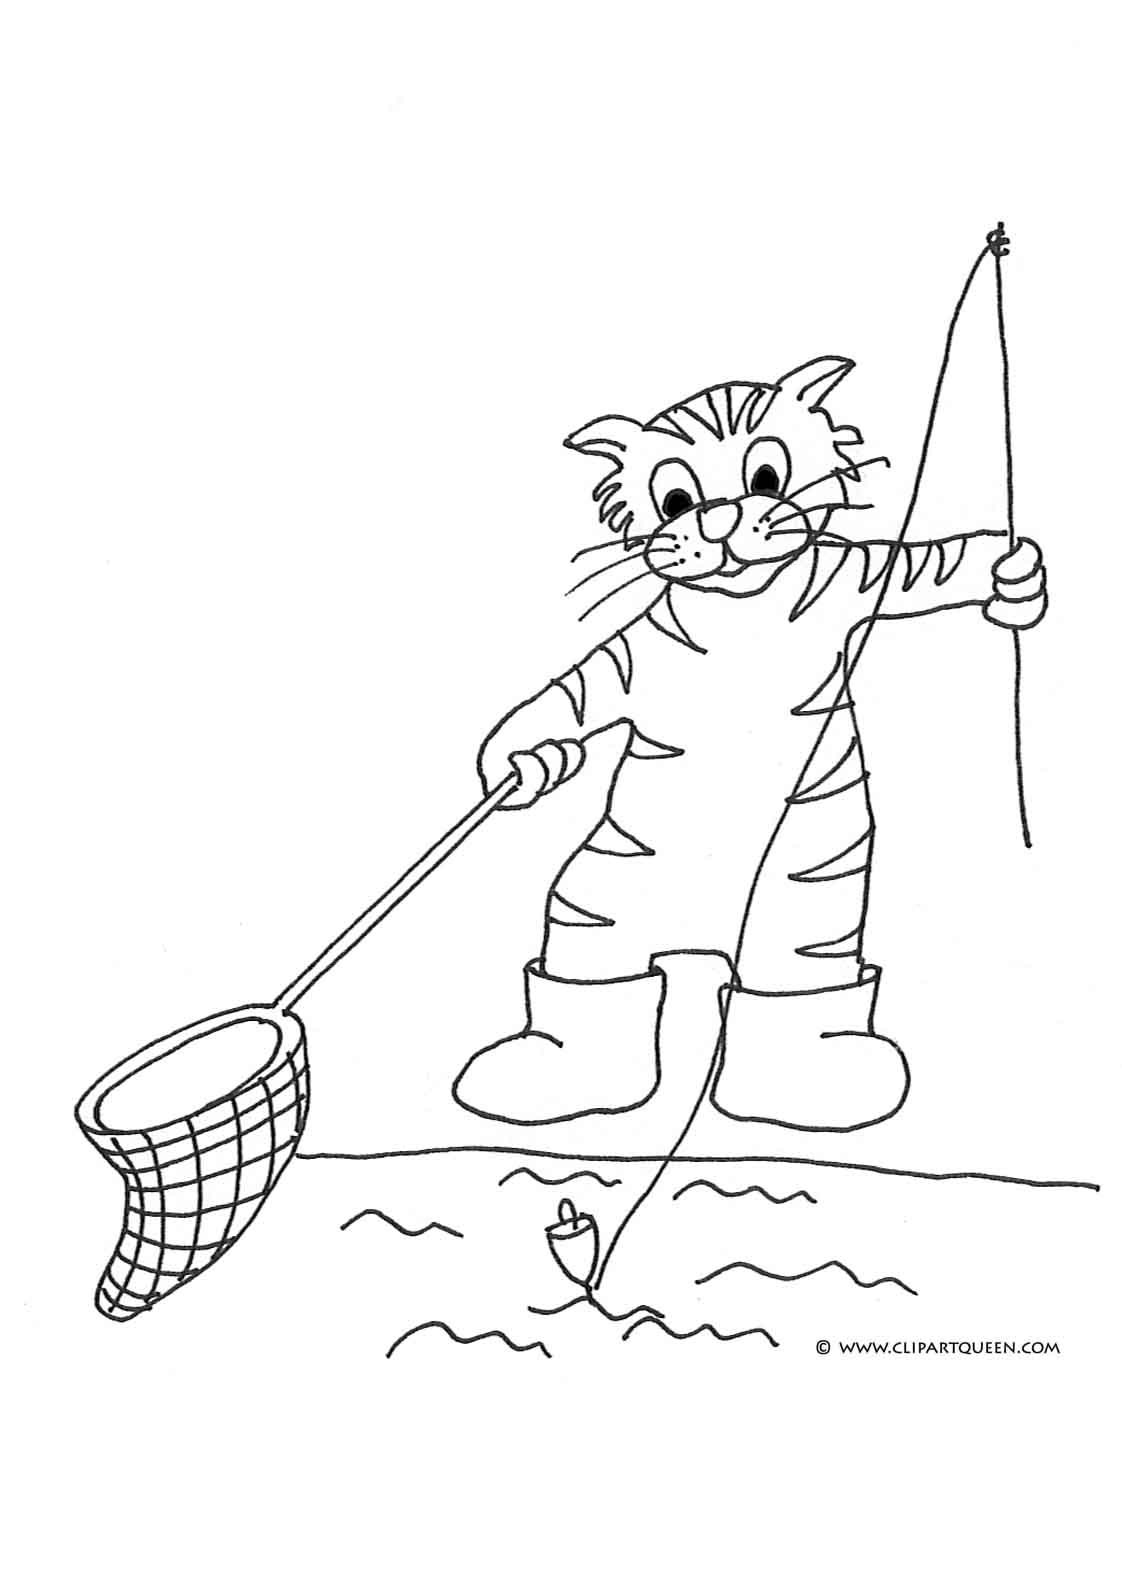 Fishing Cat clipart #11, Download drawings